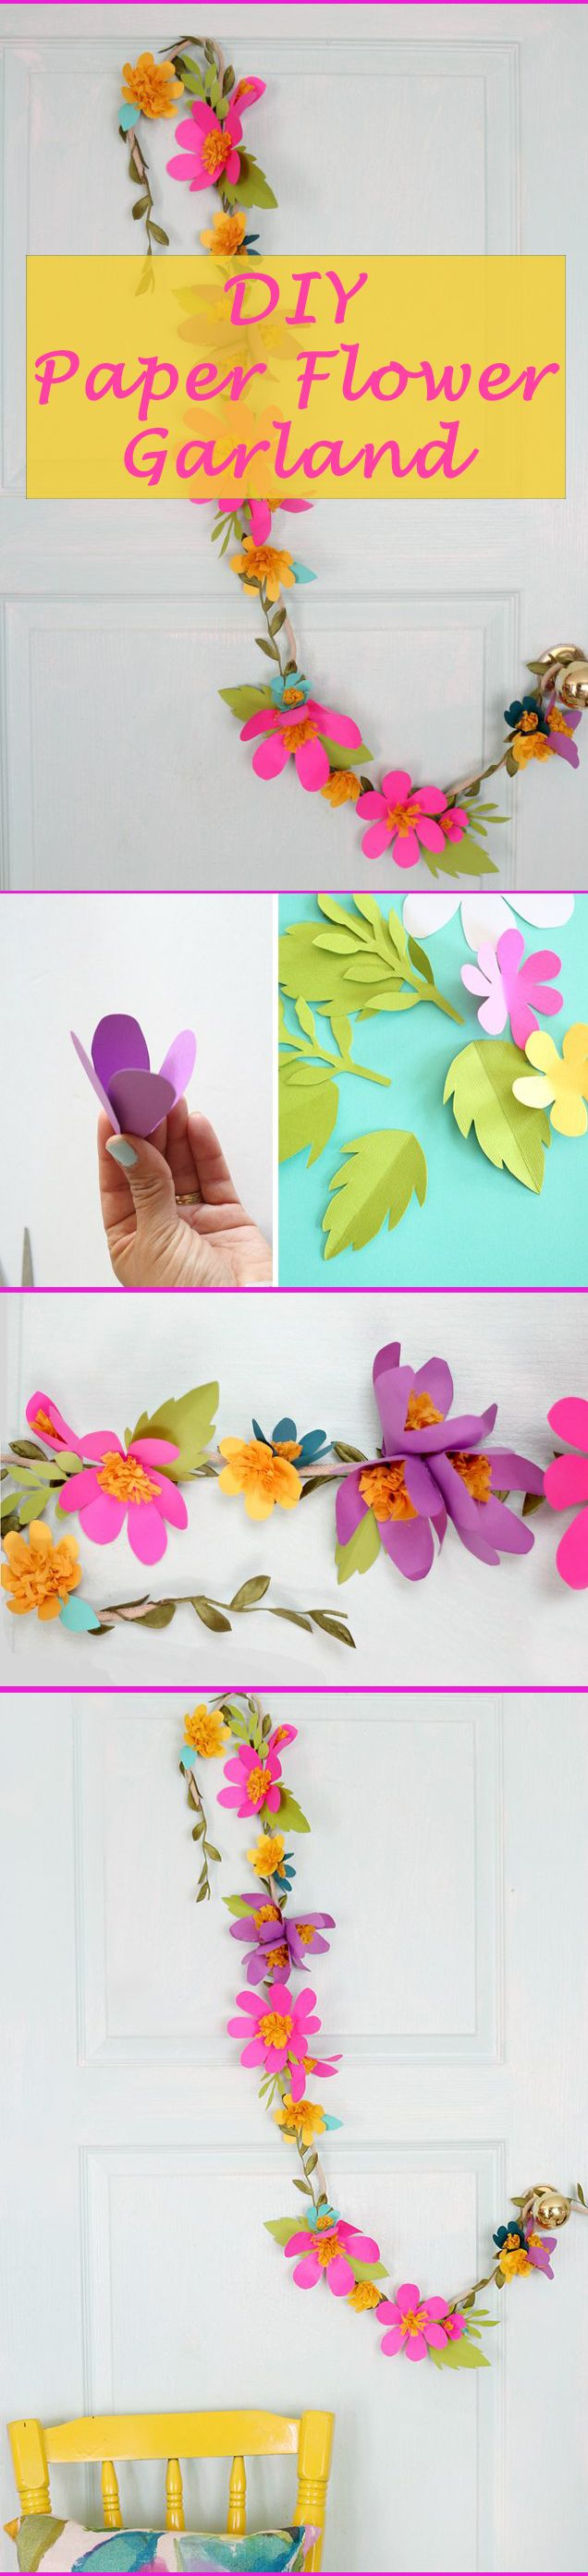 Add bright, colorful decor with this paper flower garland. A great addition for little girls who are growing up and want to have a say in the decor in their room. Not too baby, but still playful and fun! http://www.ehow.com/how_4421290_make-paper-flower-garlands.html?utm_source=pinterest.com&utm_medium=referral&utm_content=freestyle&utm_campaign=fanpage